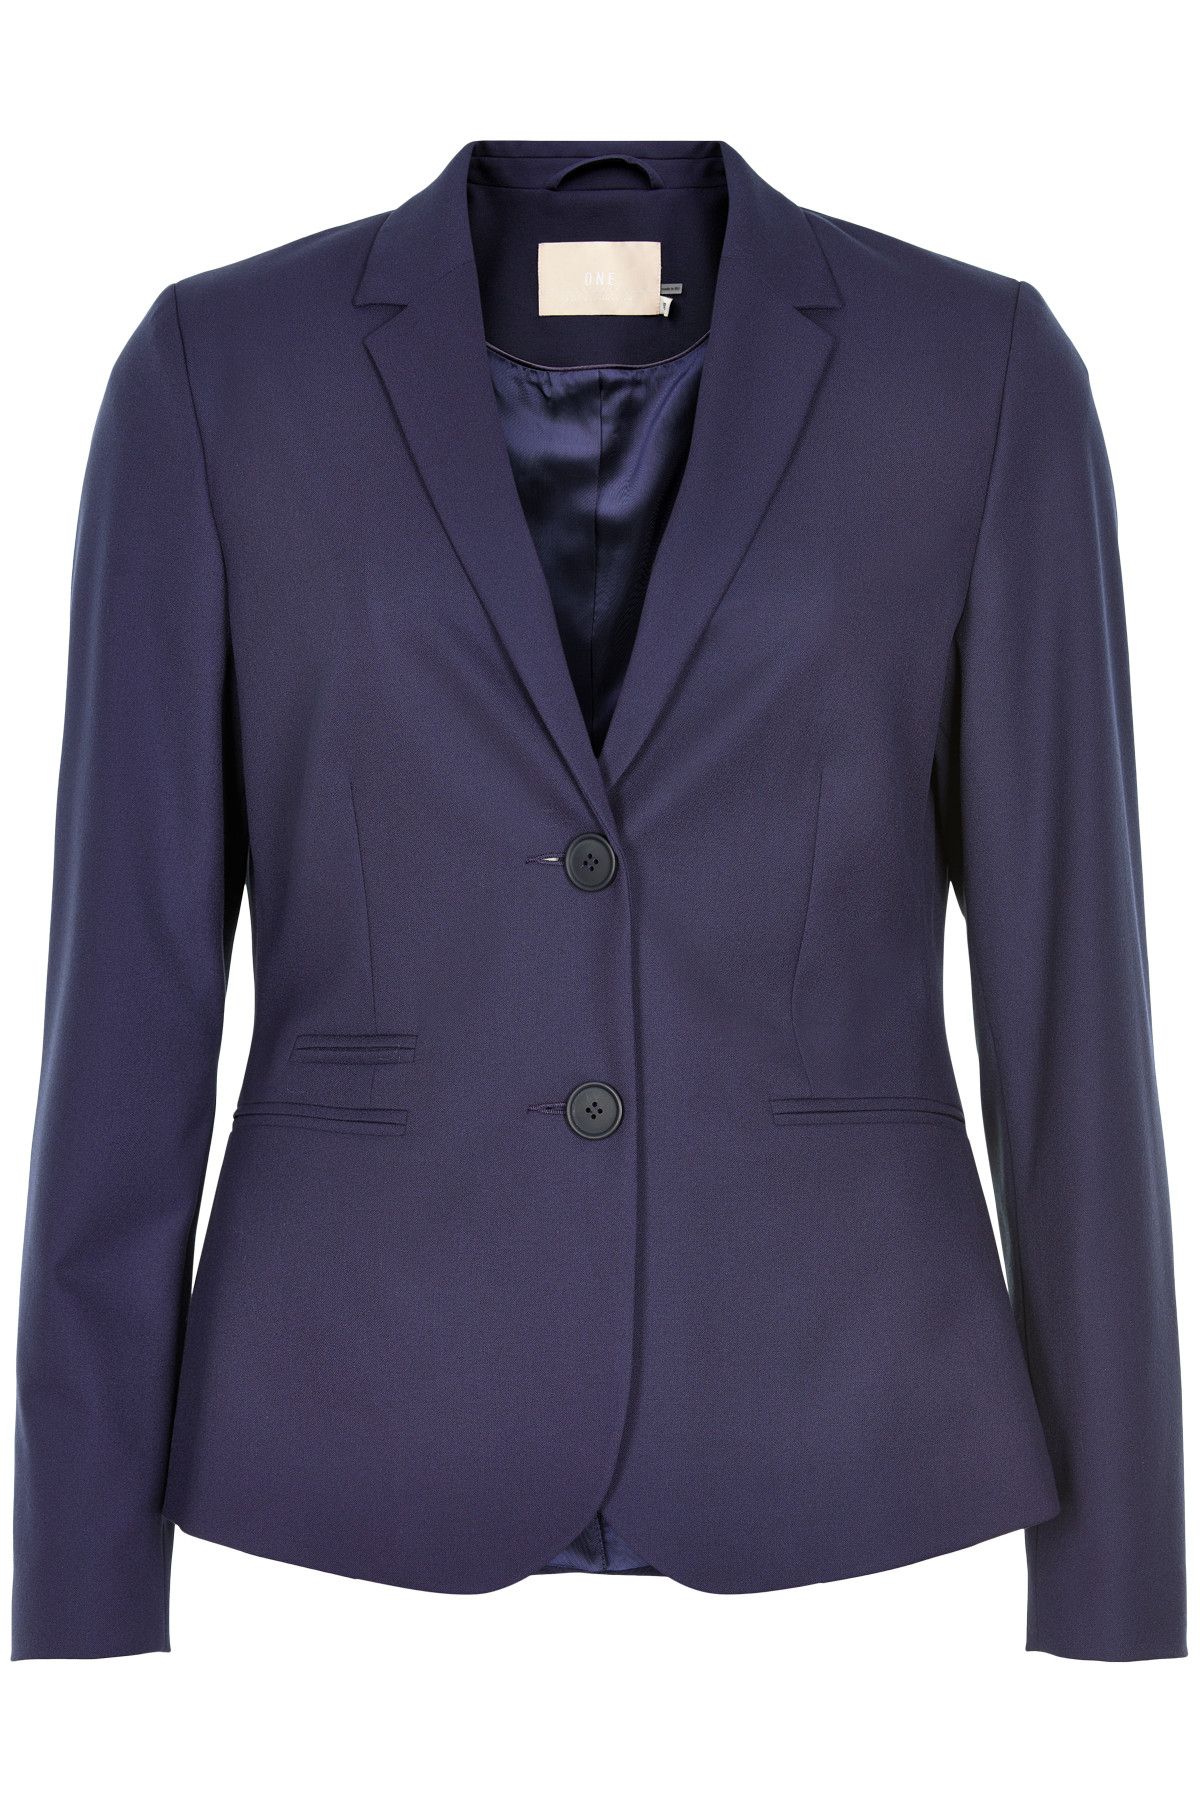 Image of   KAREN BY SIMONSEN SYDNEY BLAZER 10102089 (Dark Blue 40520, 32)